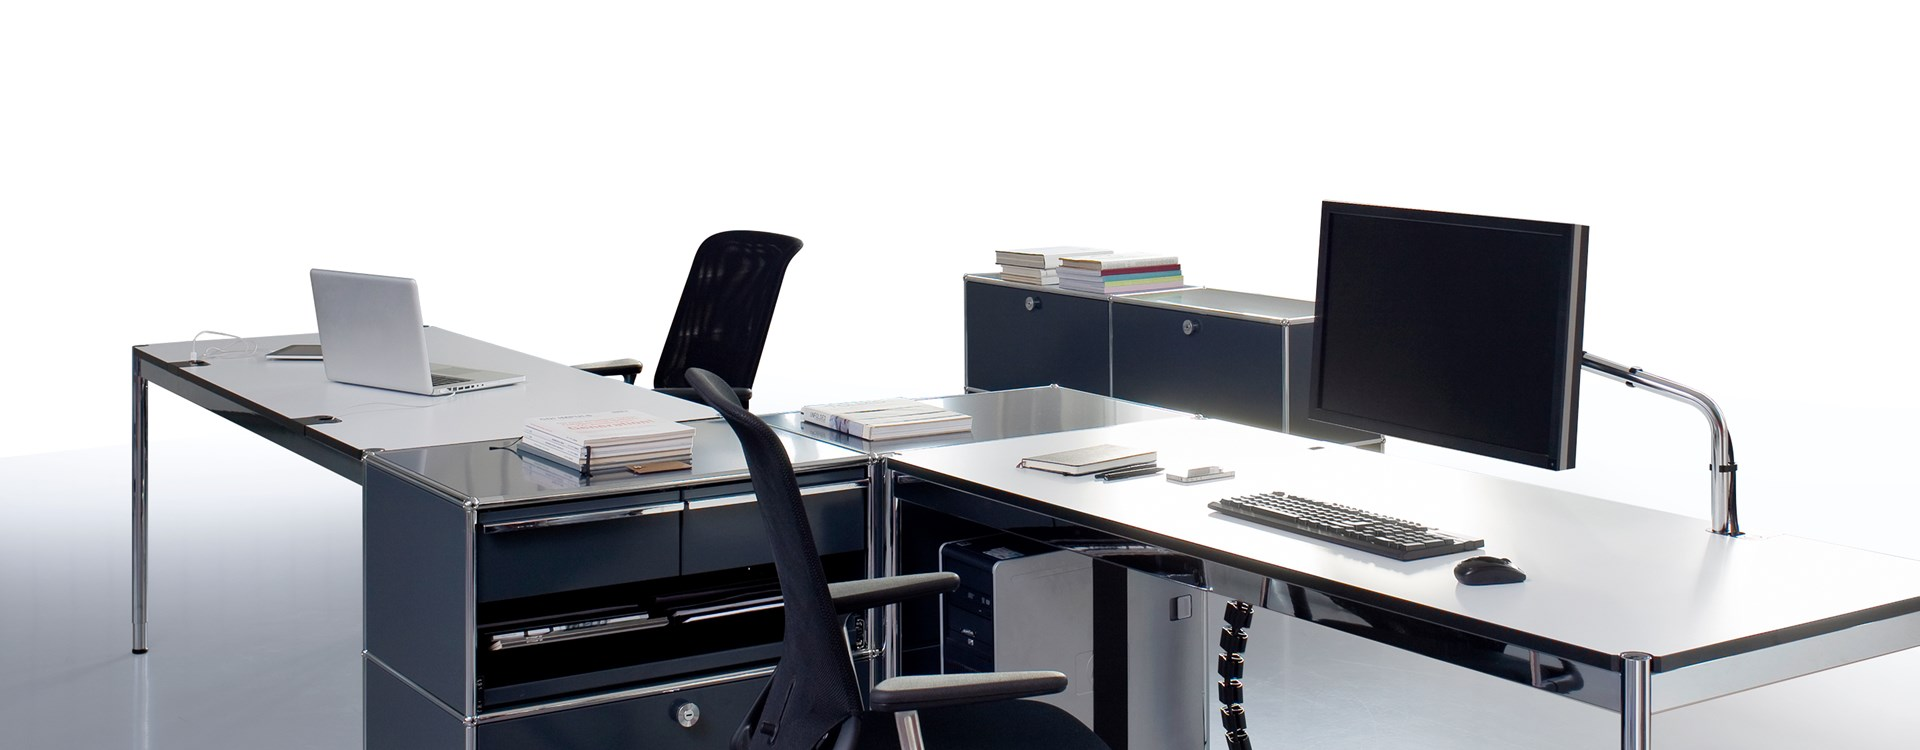 full suite of USM Haller commercial furniture with gray storage pieces and customized desks